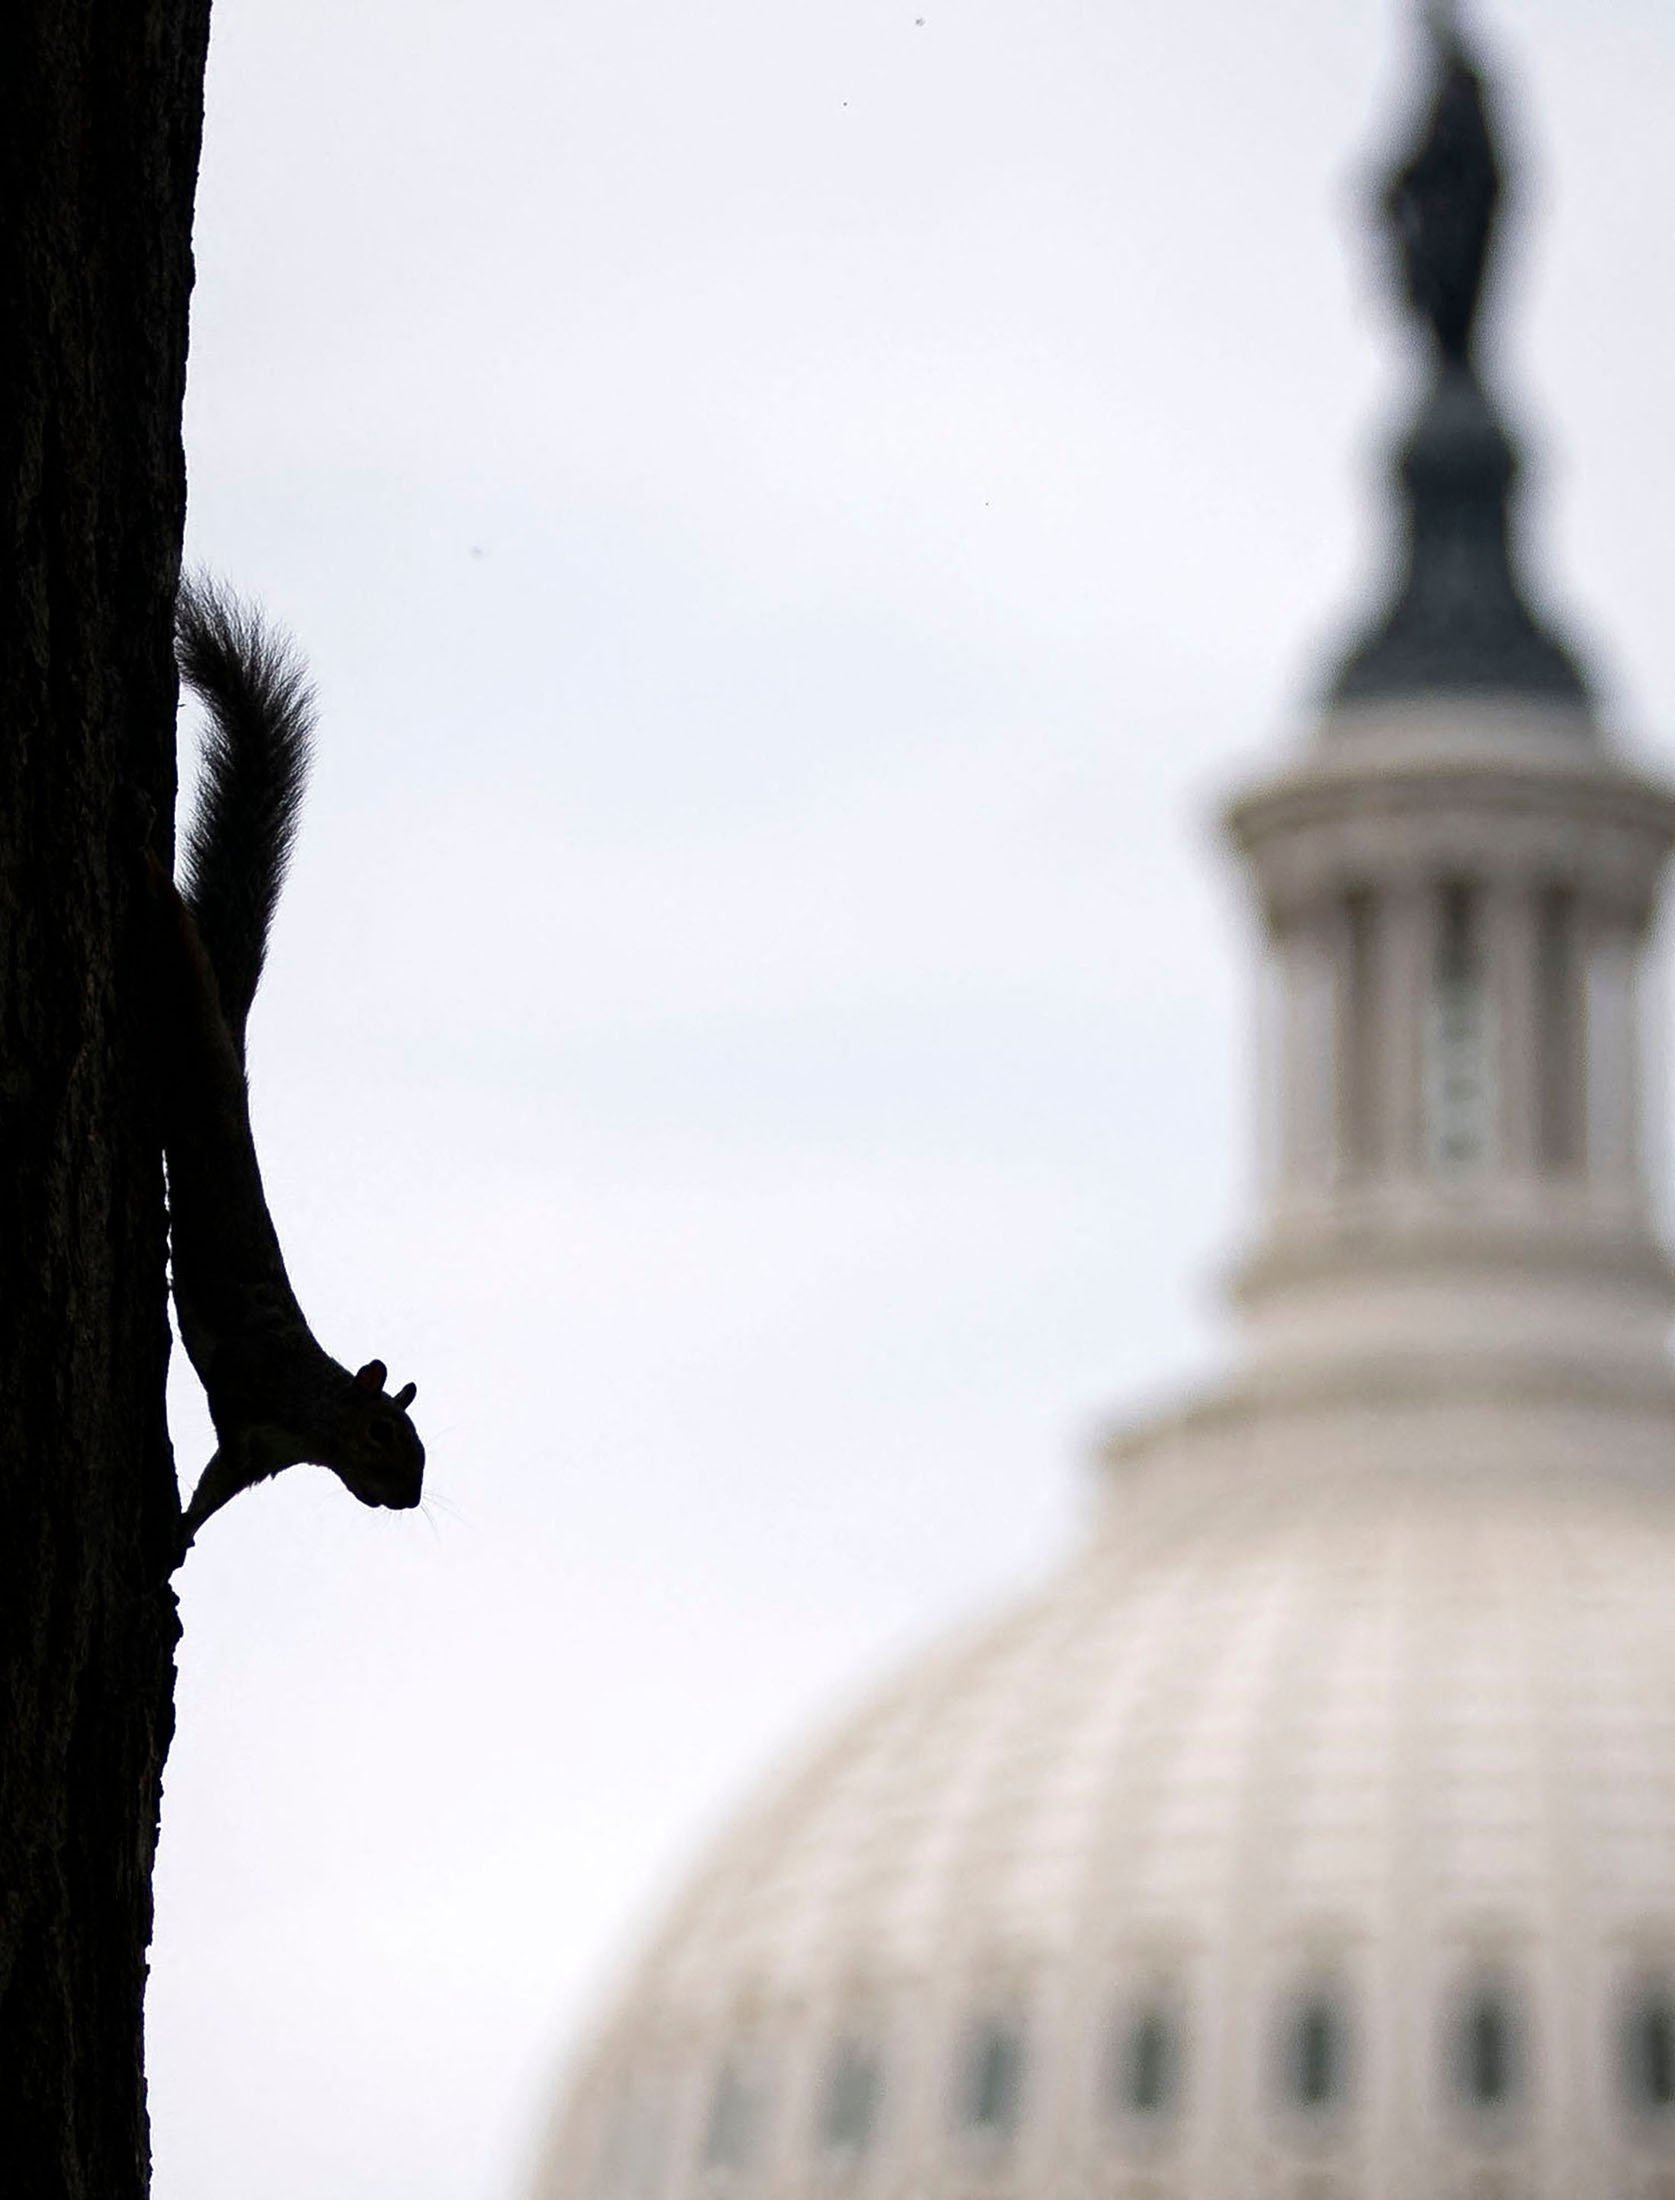 A squirrel climbs down a tree near the United States Capitol in Washington, U.S., Sept. 28, 2020. (AFP Photo)